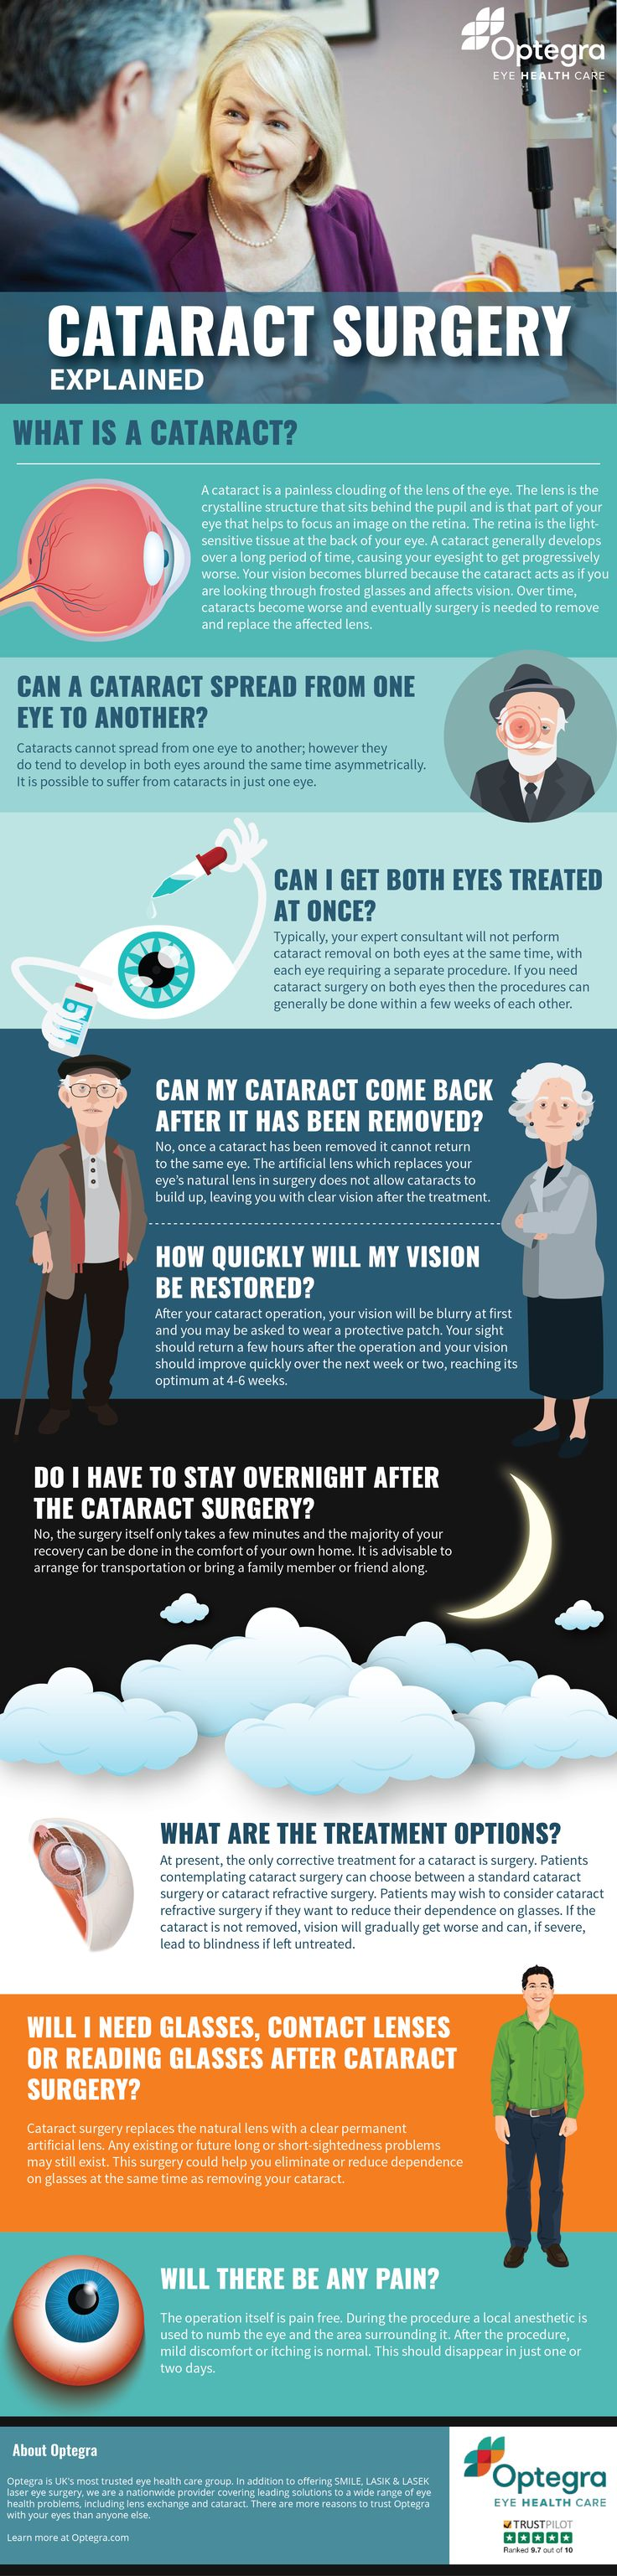 If you've developed cataracts, you don't have to simply put up with it. Reduce your dependence on glasses with cataract surgery at one of Optegra's dedicated eye hospitals. Our committed team of experienced ophthalmic surgeons use the latest technology to ensure the best results, as well as the highest level of care before, during, and after treatment.